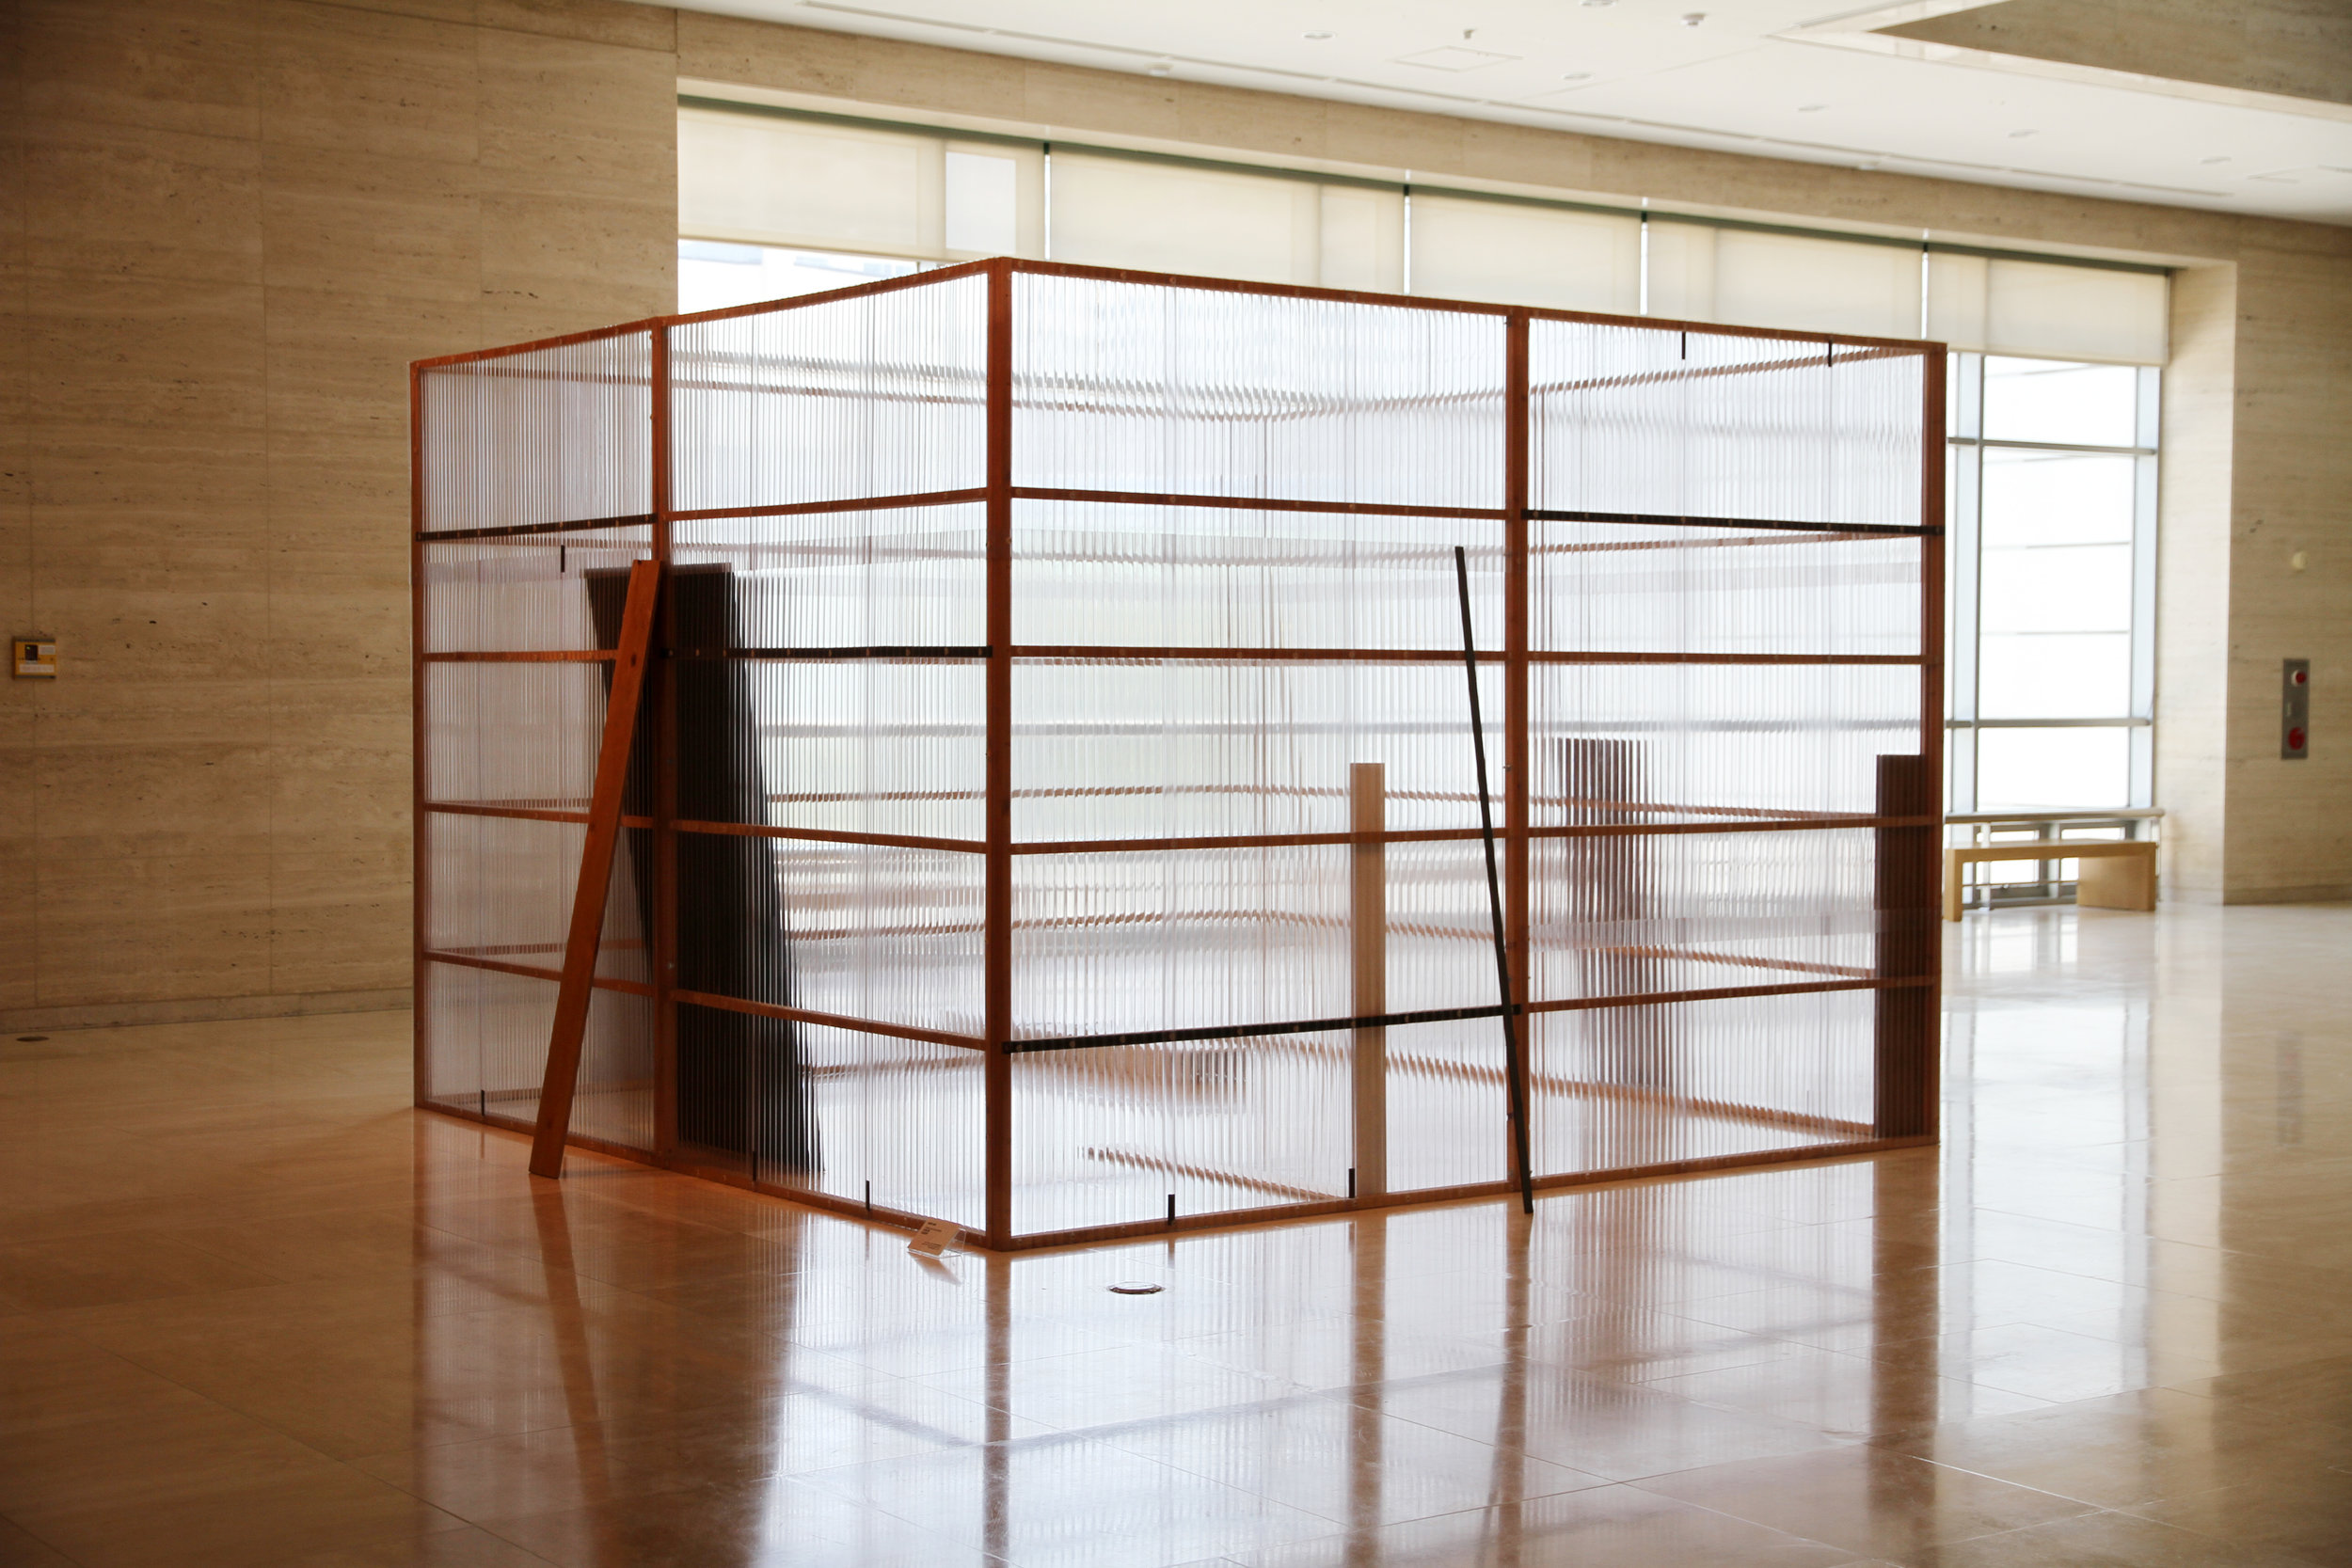 Concealed and Enclosed Surroundings , 1997 包囲周閉 ( Hōi Shūhei ) Wood, paint, metal bars, corrugated metal, corrugated plastic 250 x 340 x 340 centimeters Installation view,  Contemporary Art of China and Japan , Busan Museum of Modern Art, Korea, 2010 Photo: Tsuyoshi Satoh